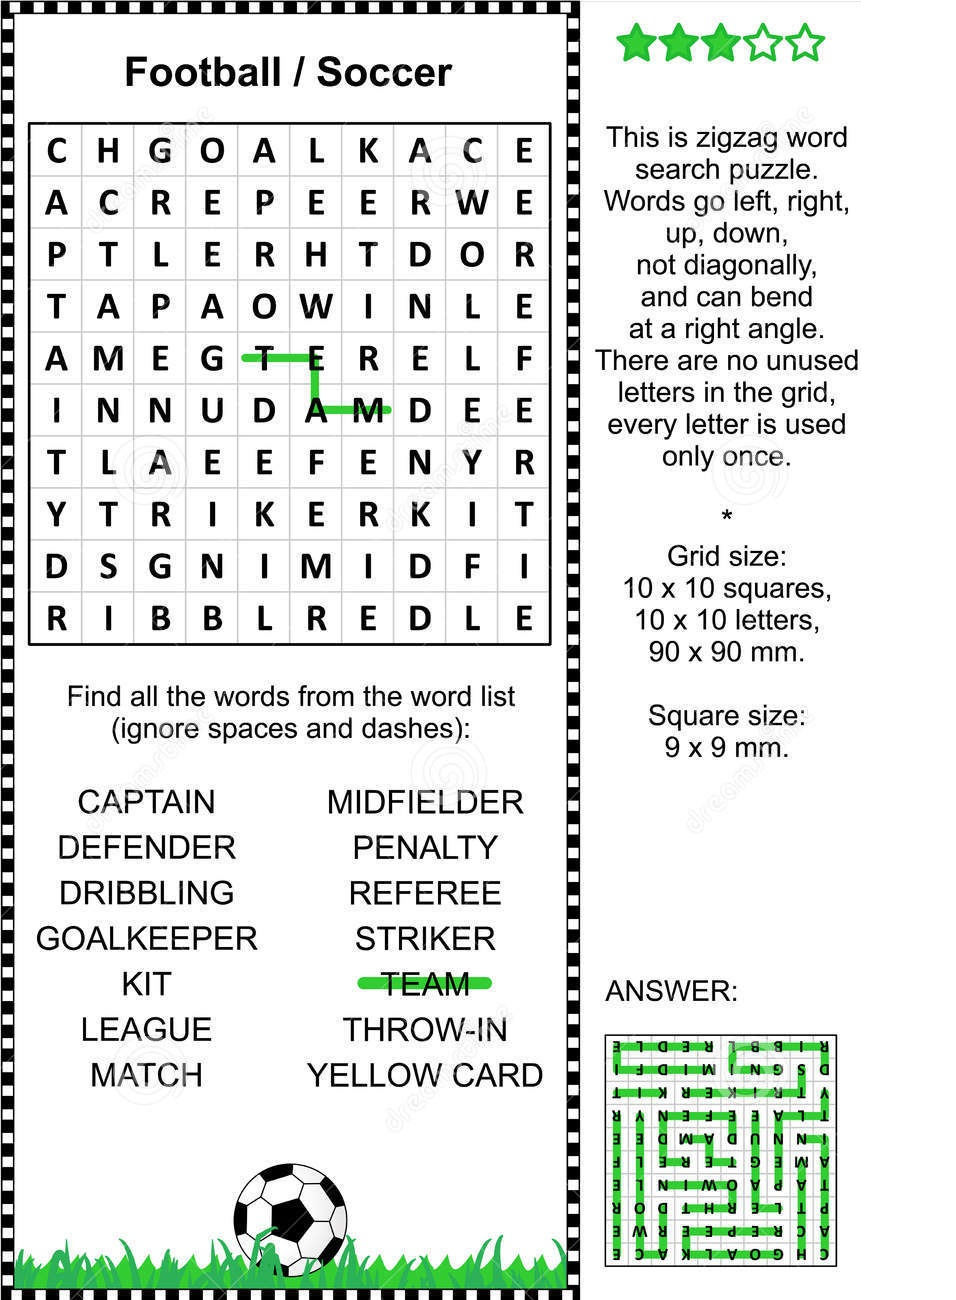 soccer-word-search-2016